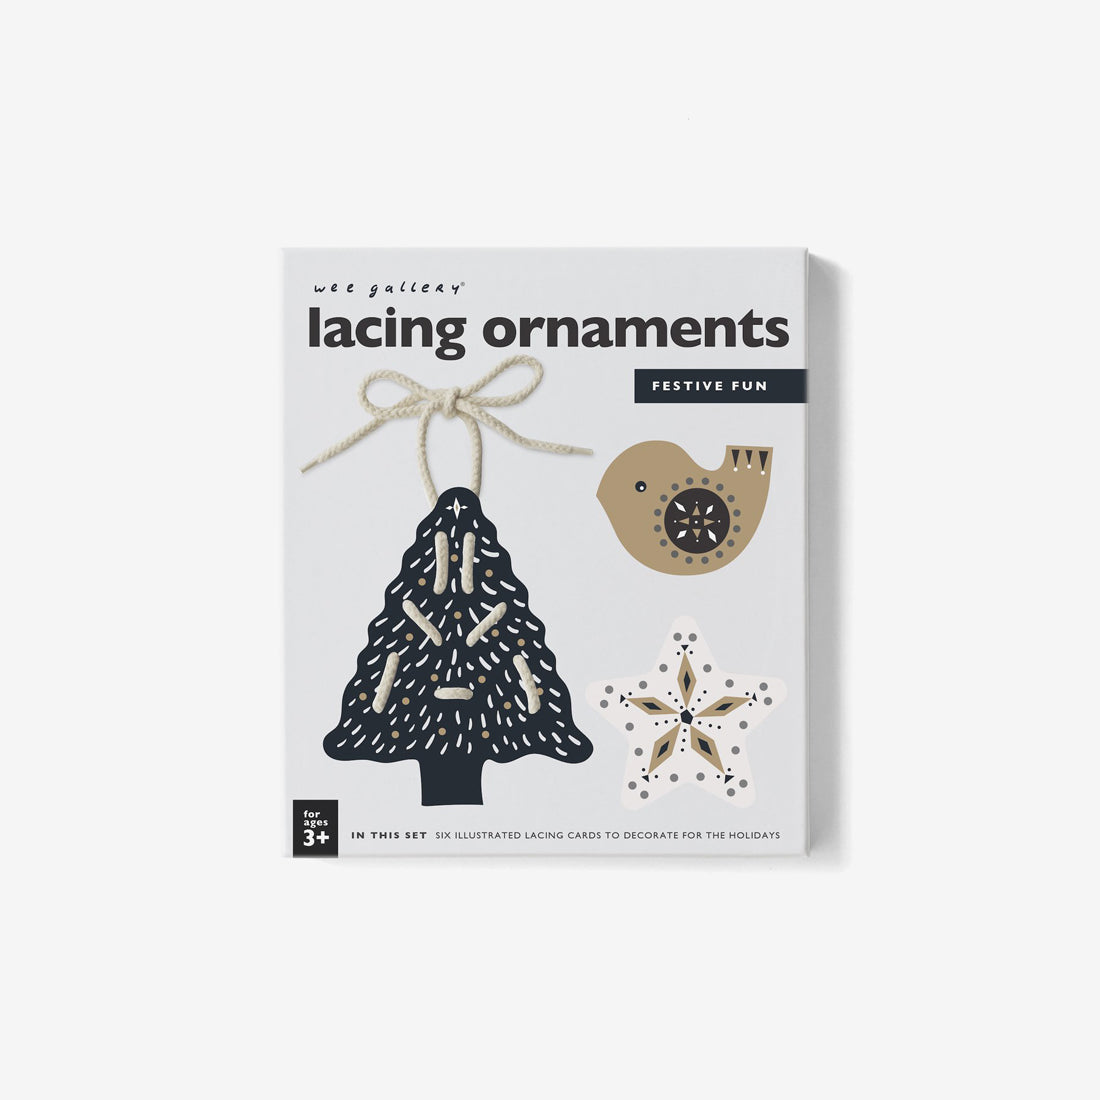 Festive Fun Lacing Ornaments Kit